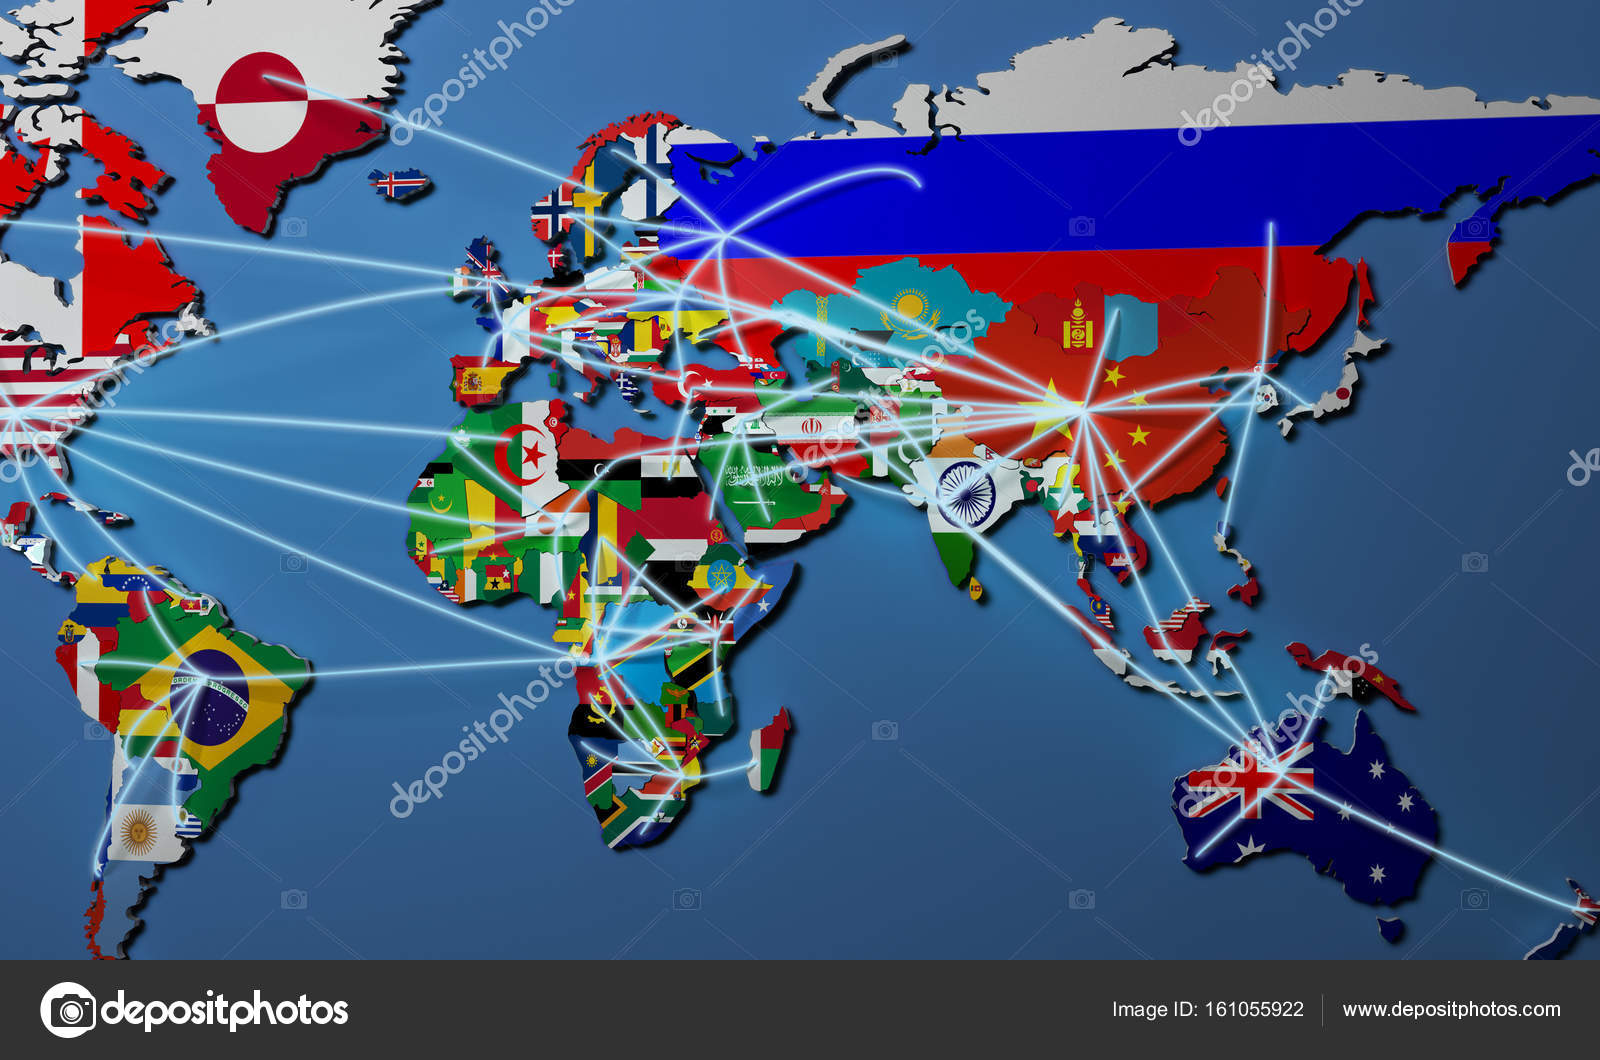 Online shopping in world map 3d illustration stock photo online shopping in world map 3d illustration stock photo gumiabroncs Gallery